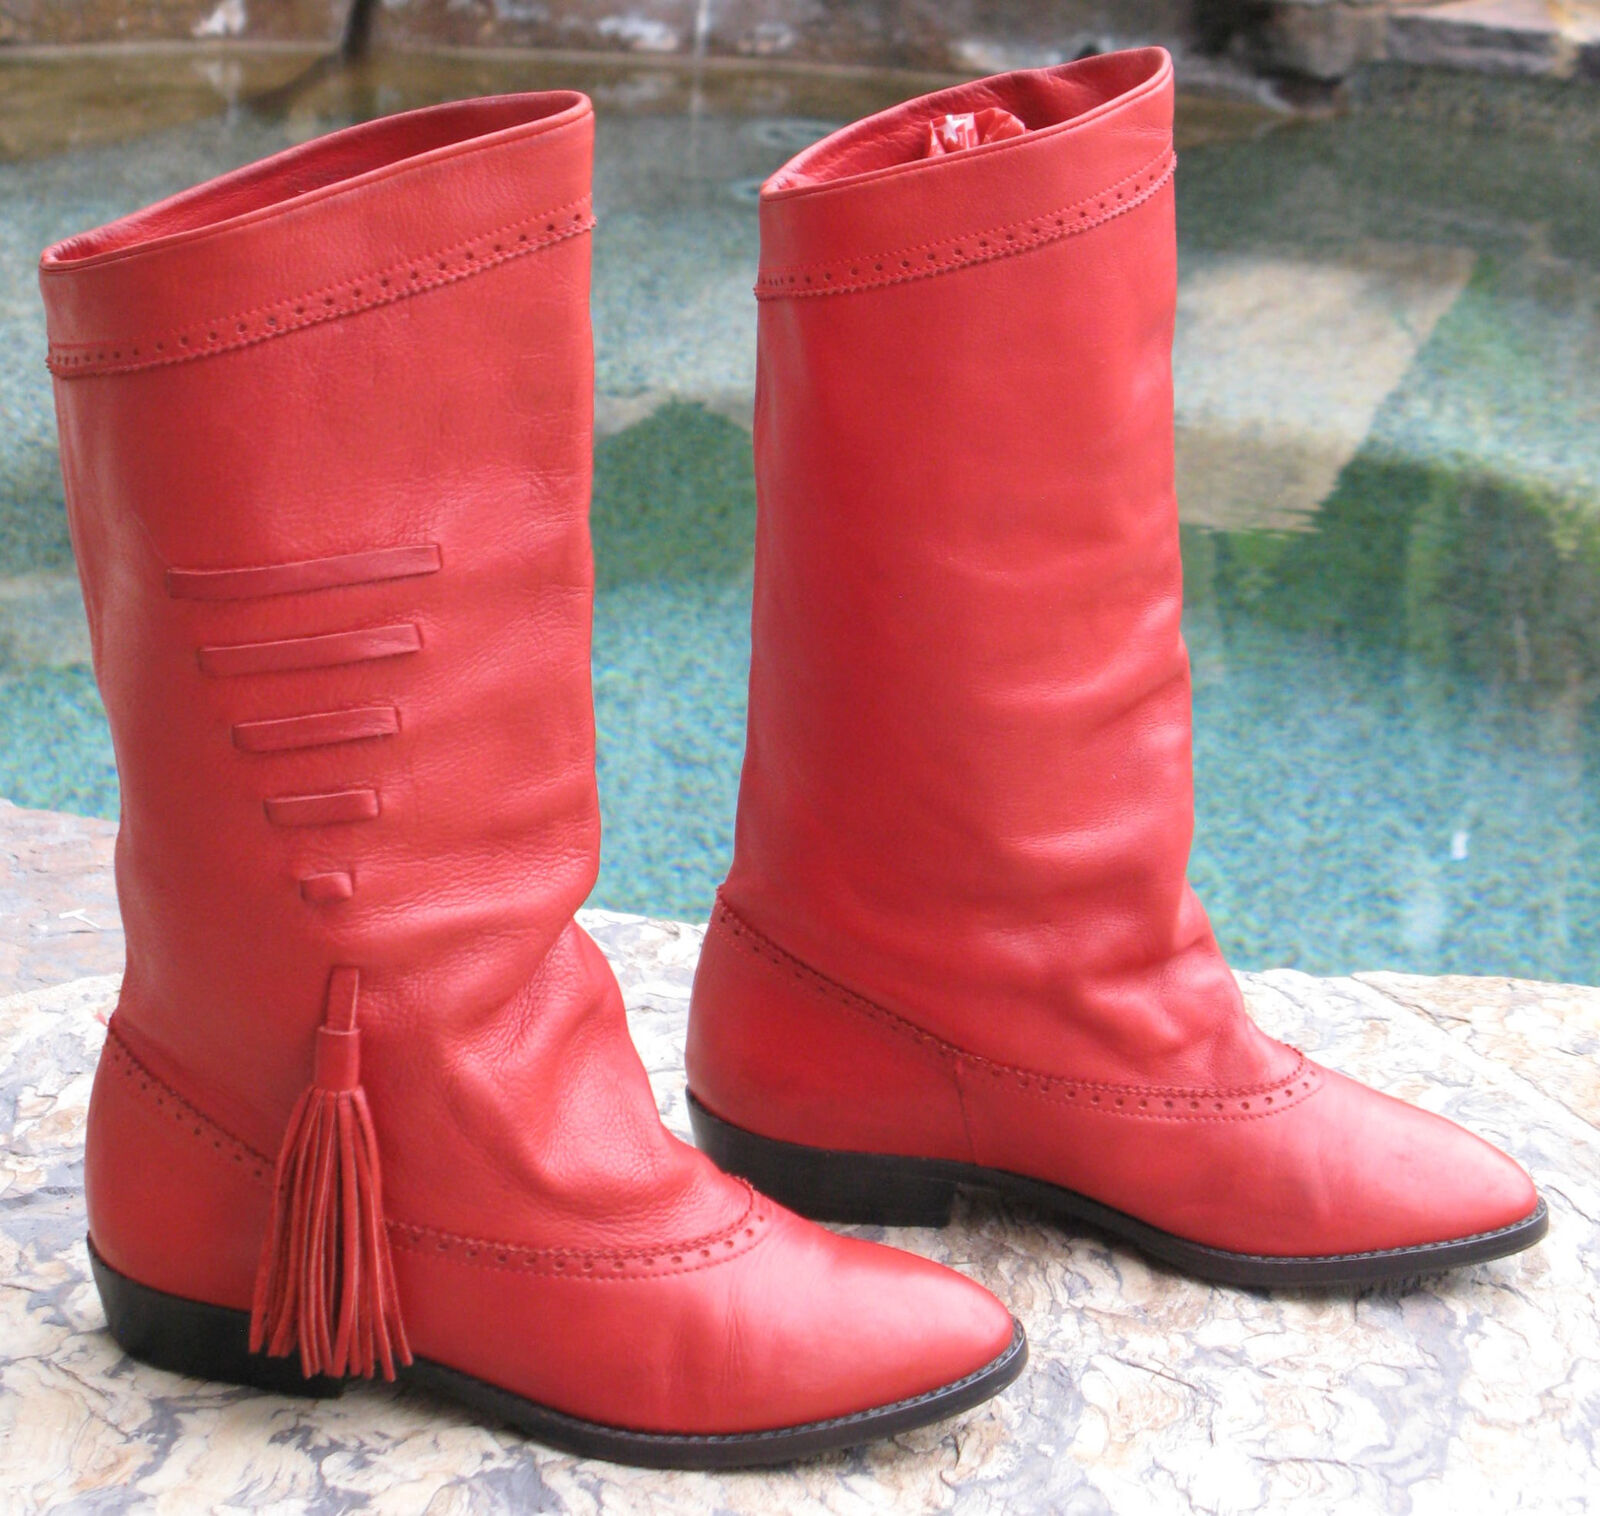 Neiman Marcus Italian Slouchy Red Leather Riding Riding Riding Boots USA Sz 6 EUR 37 23d2c7